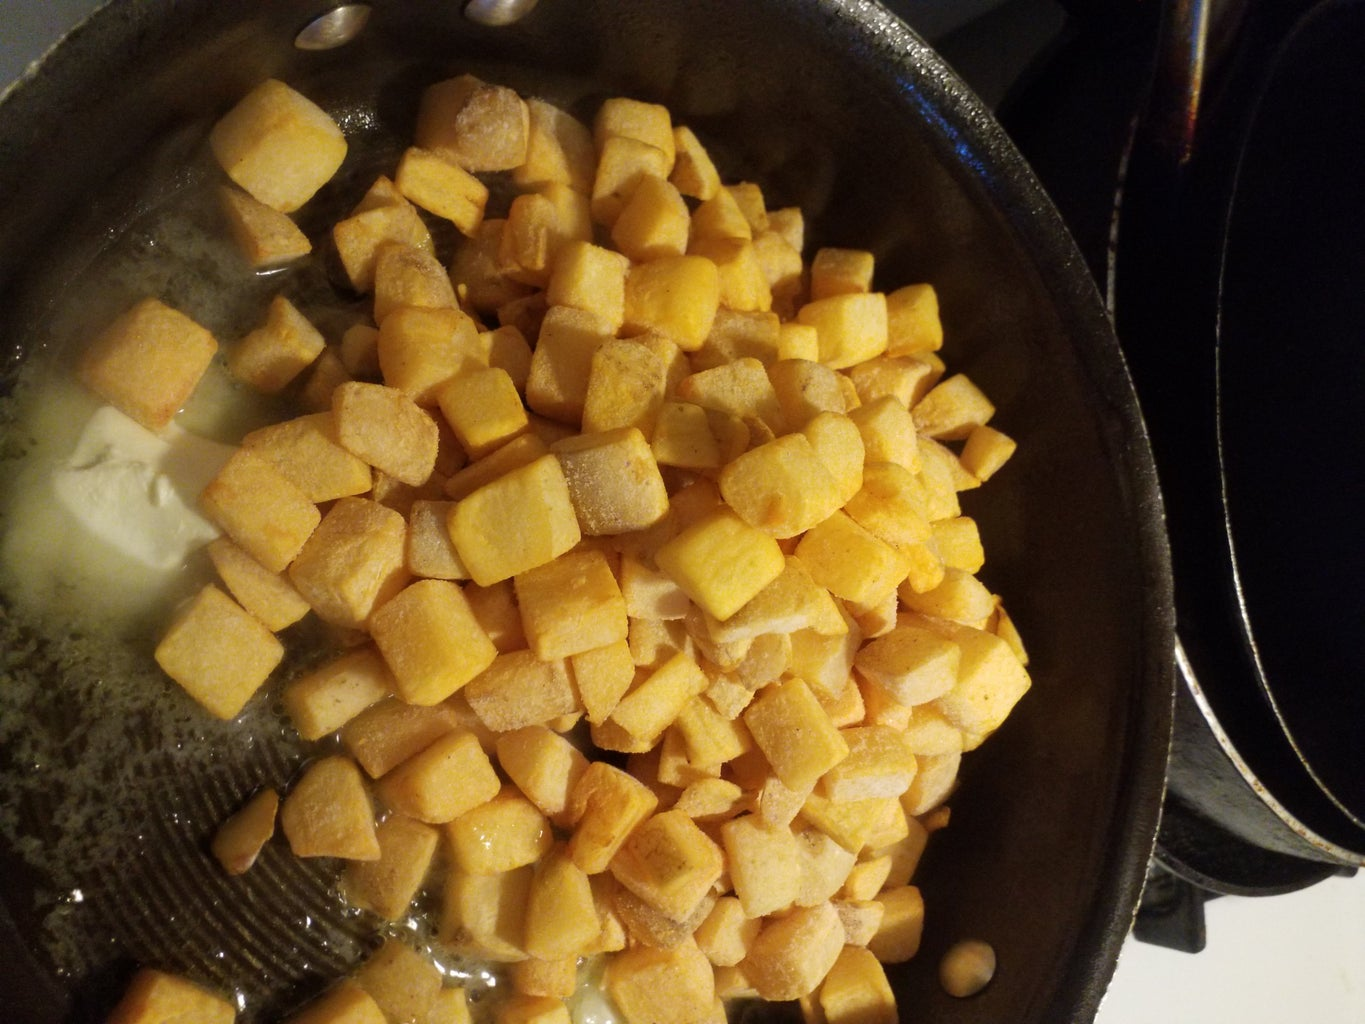 STEP 1: PREP AND COOK THE POTATOES